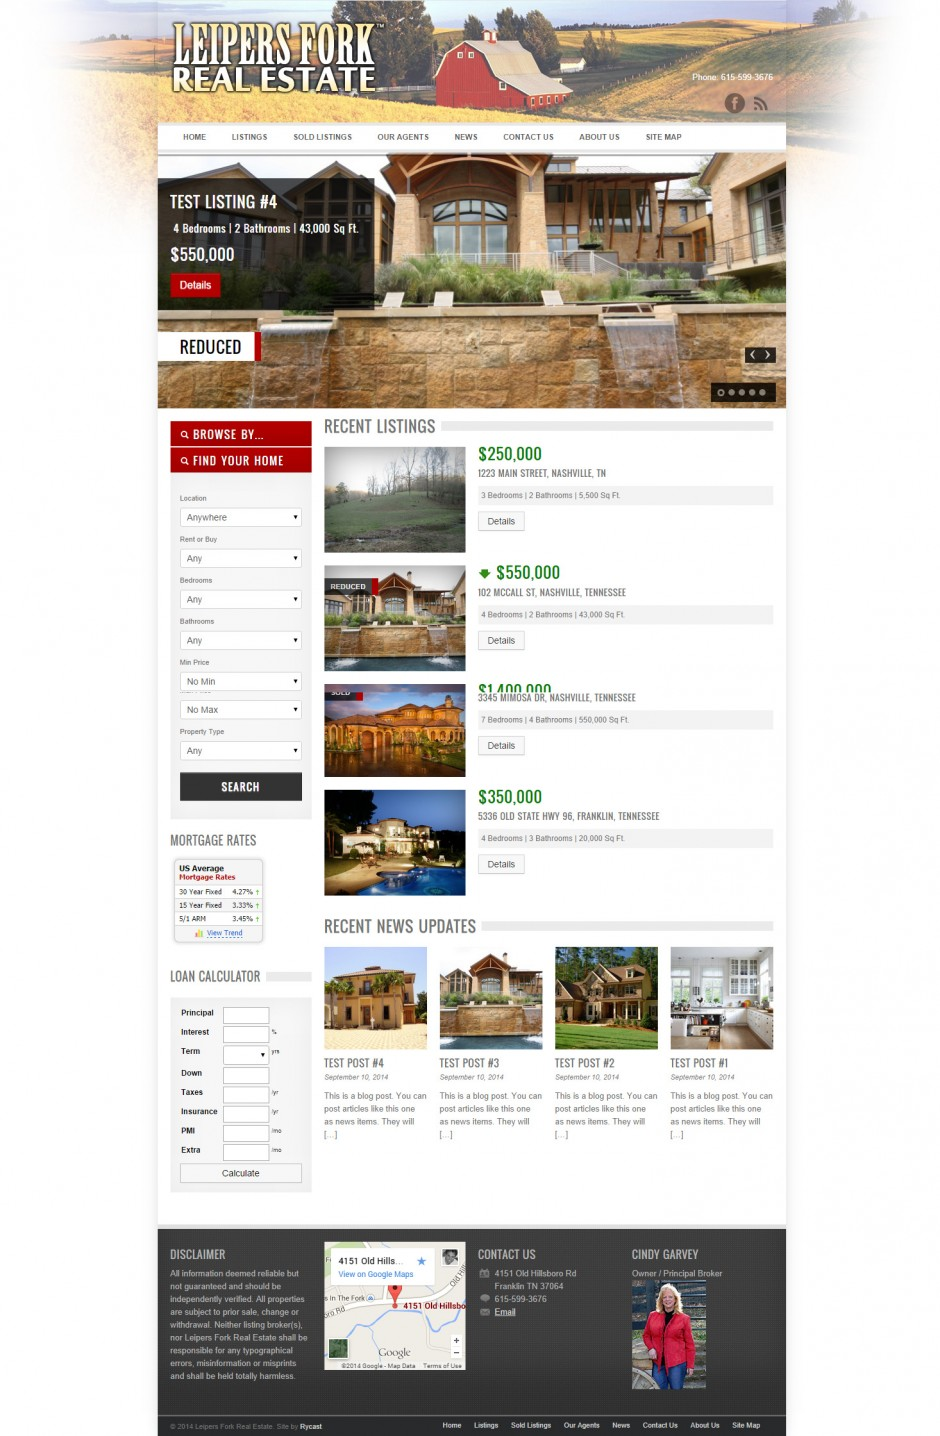 Leipers Fork Real Estate Home Page - This website was designed in Summer of 2014 for Cindy Garvey, by Ryan C. Stebbins.